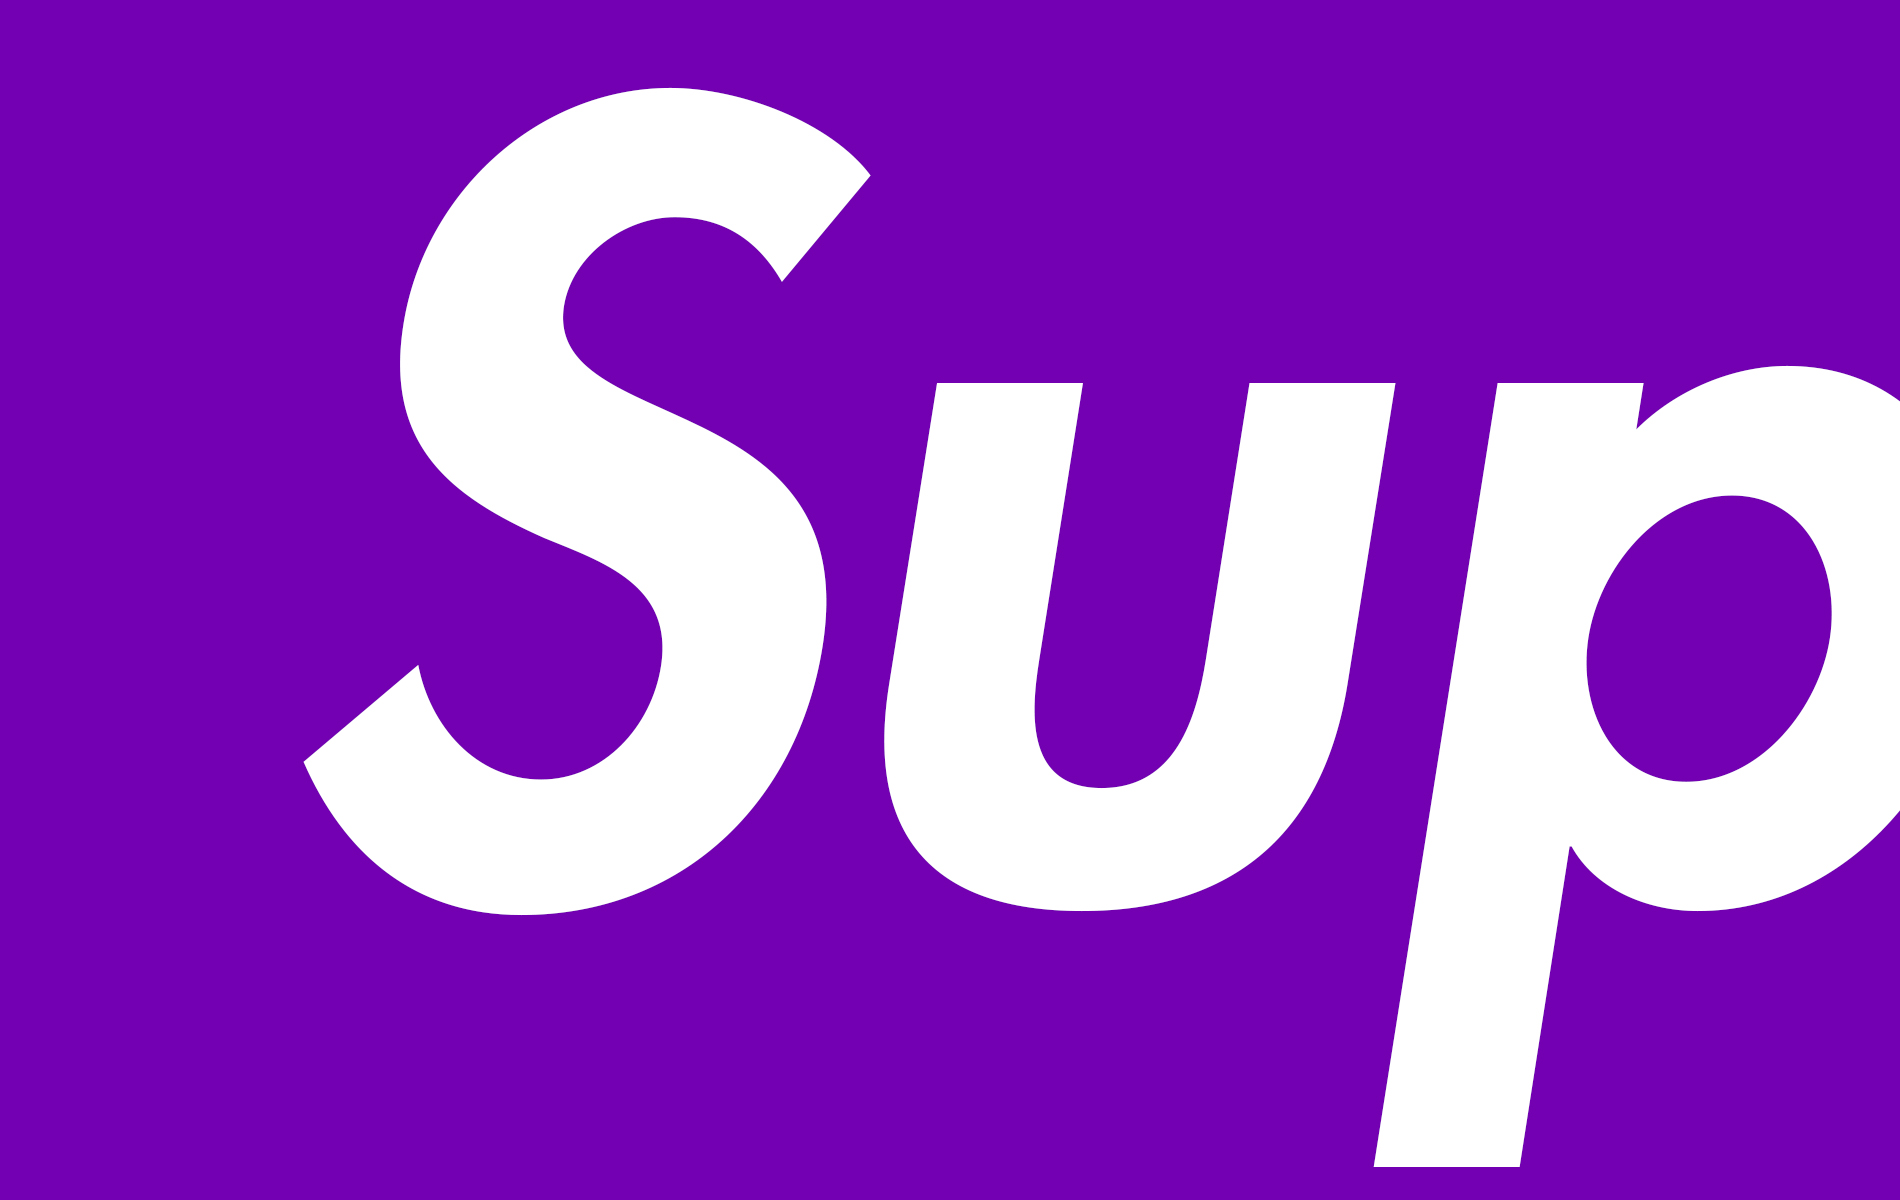 Supreme HD Wallpapers in 4k